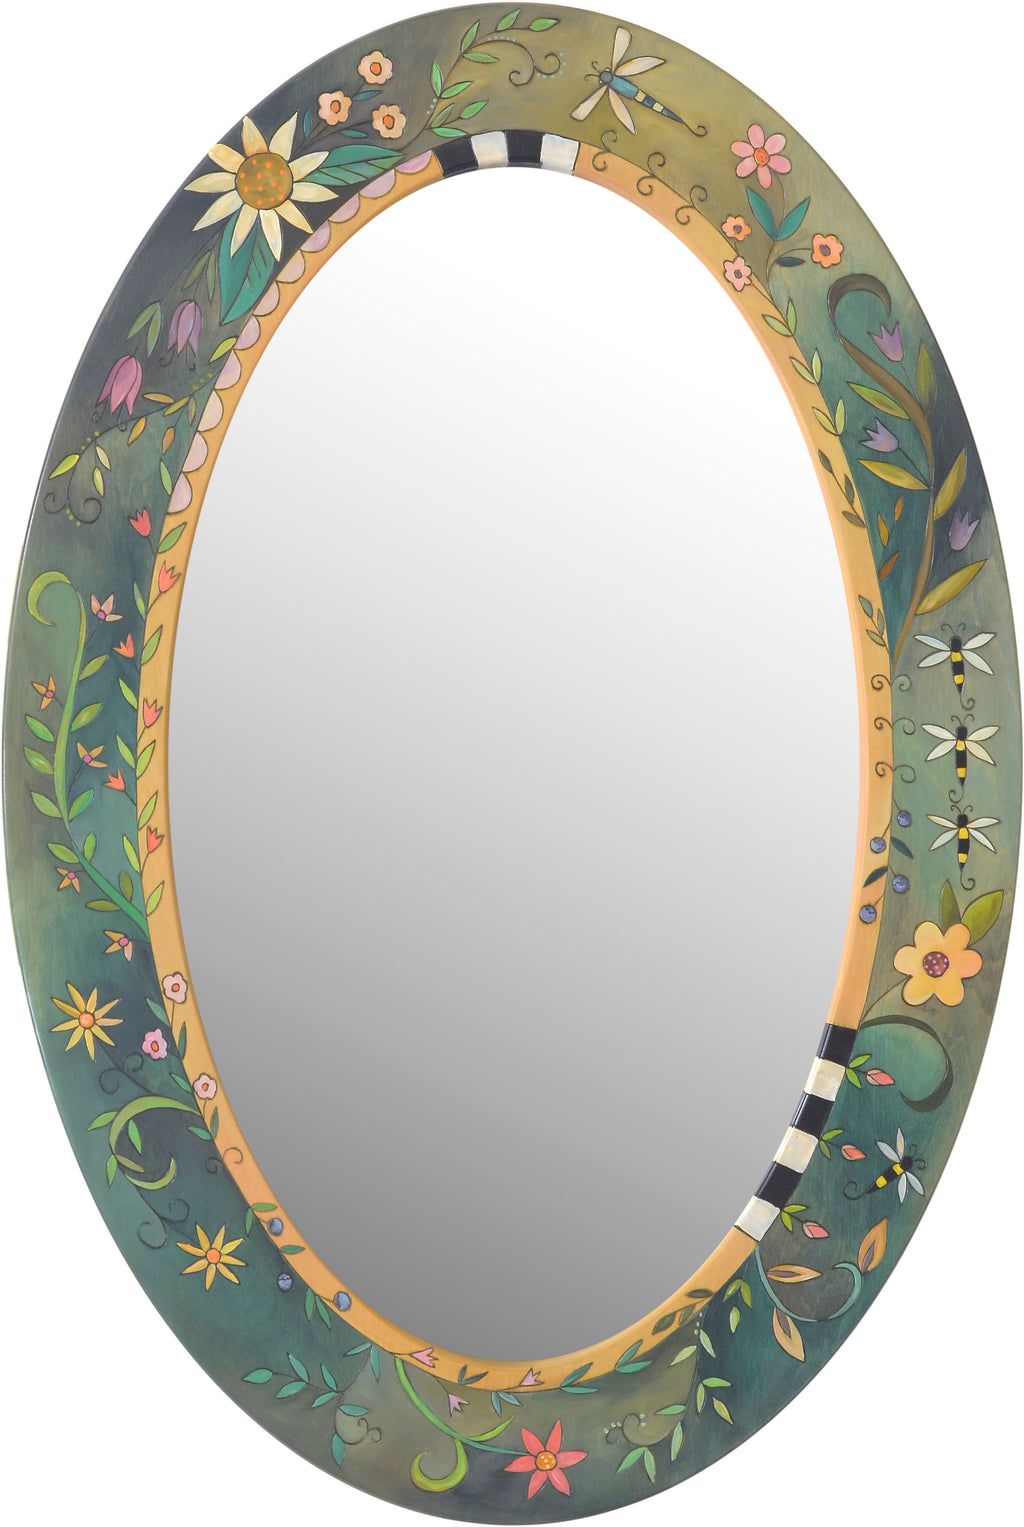 Oval Mirror –  Beautiful floral motif with bees flying about